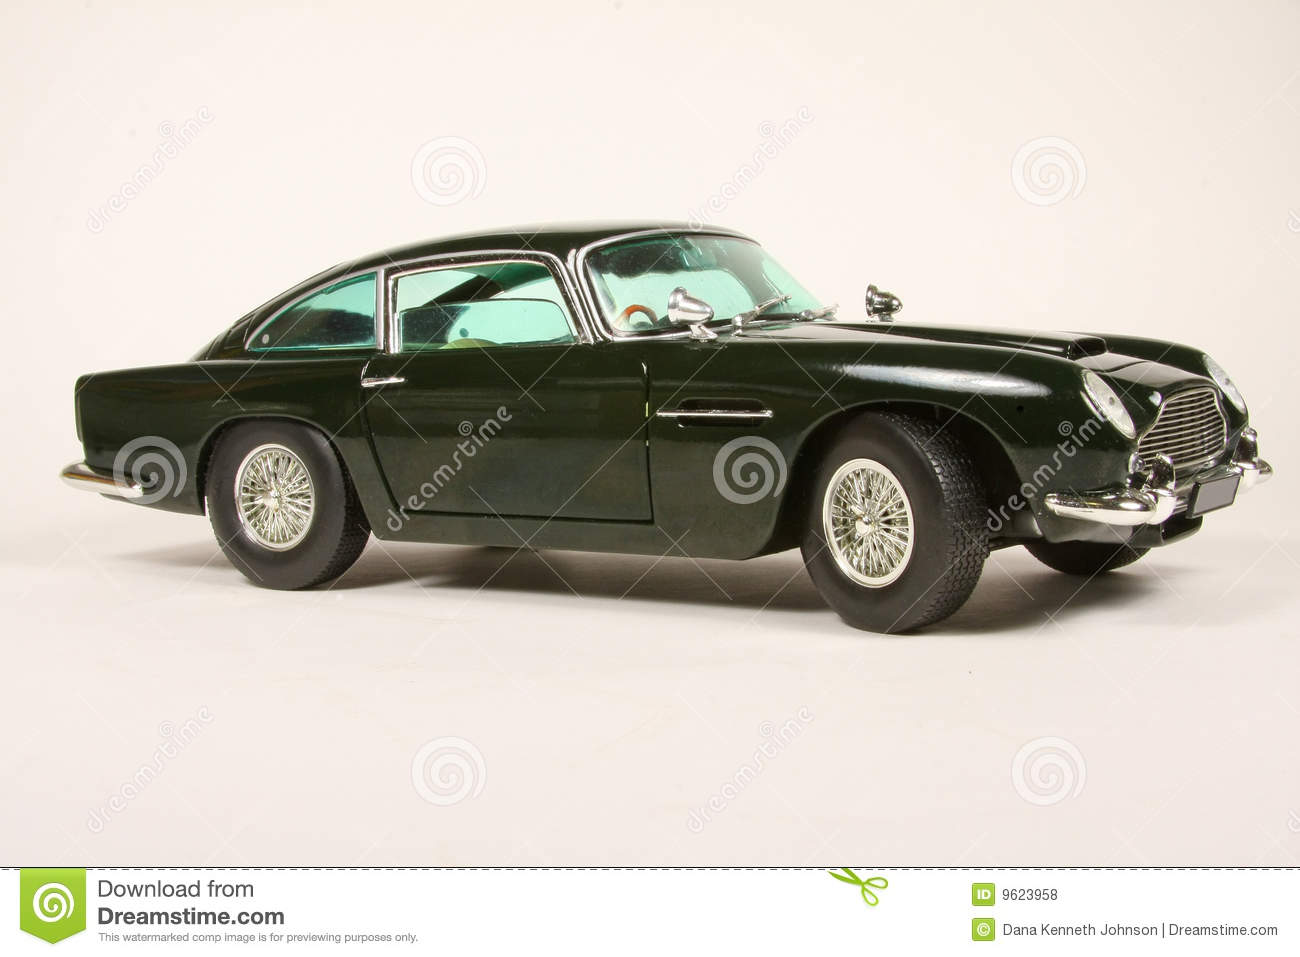 183 Martin Db5 Photos Free Royalty Free Stock Photos From Dreamstime